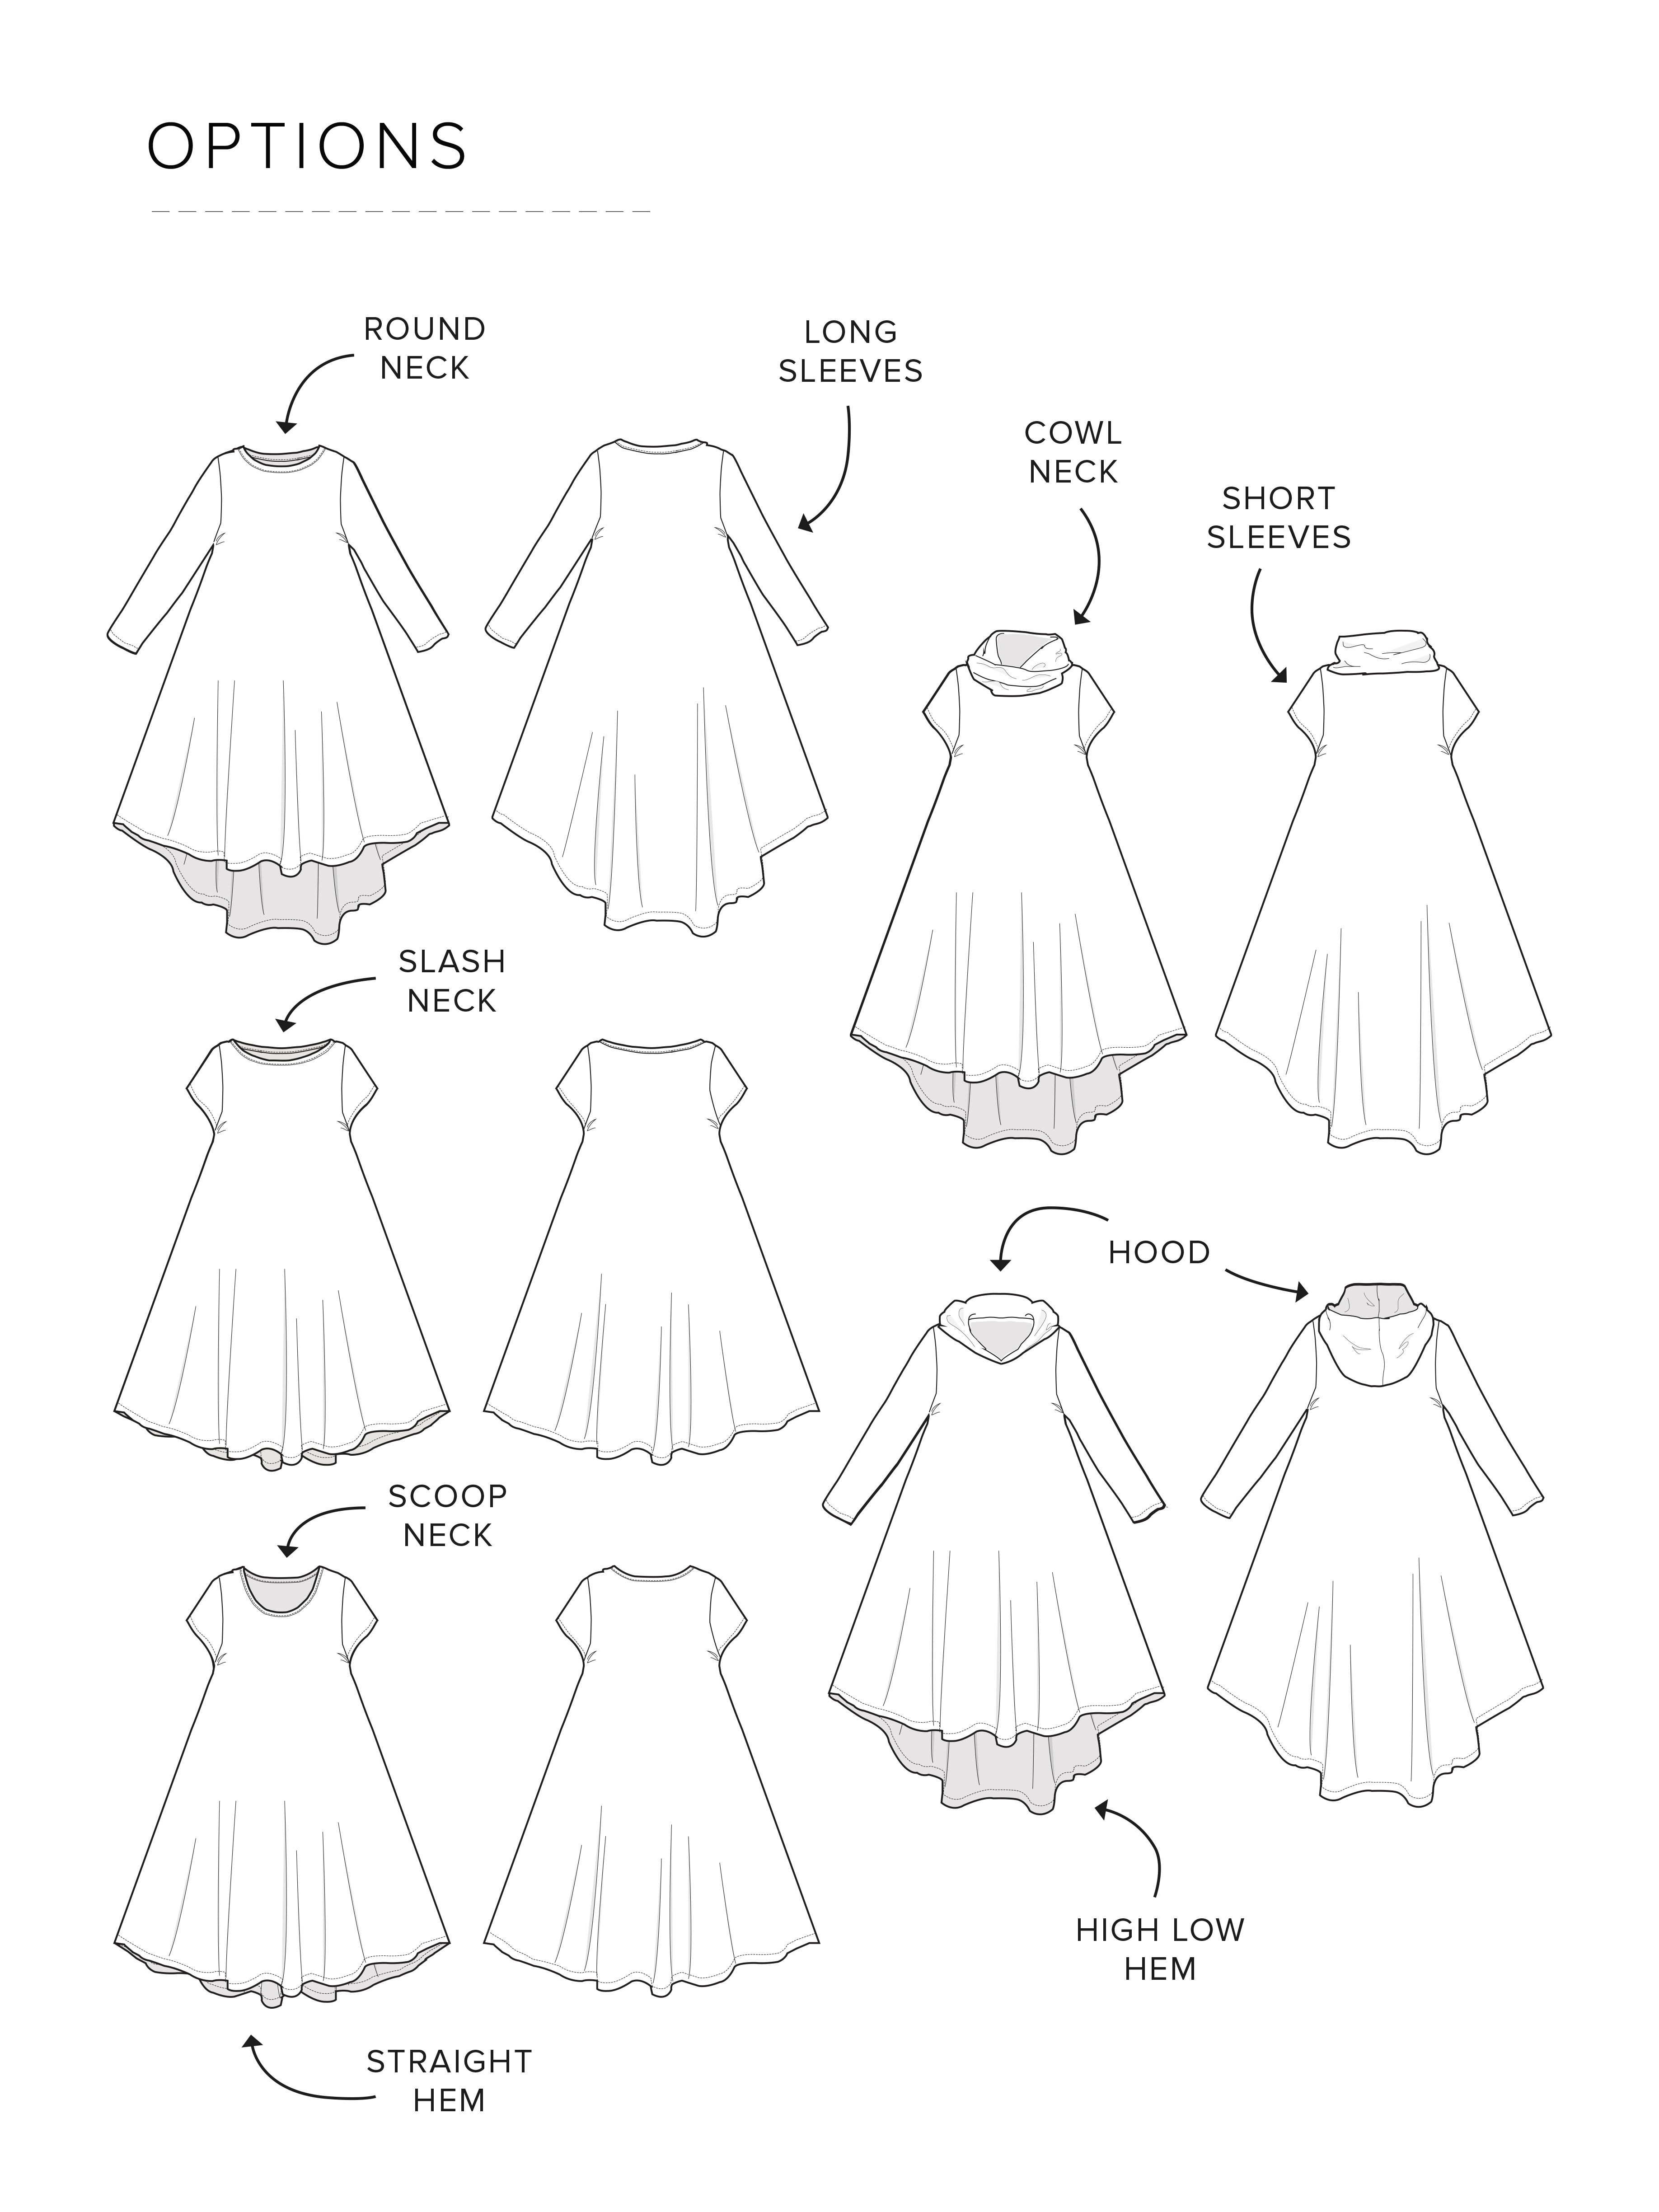 Groove dress for adults | Pinterest | Vestiditos